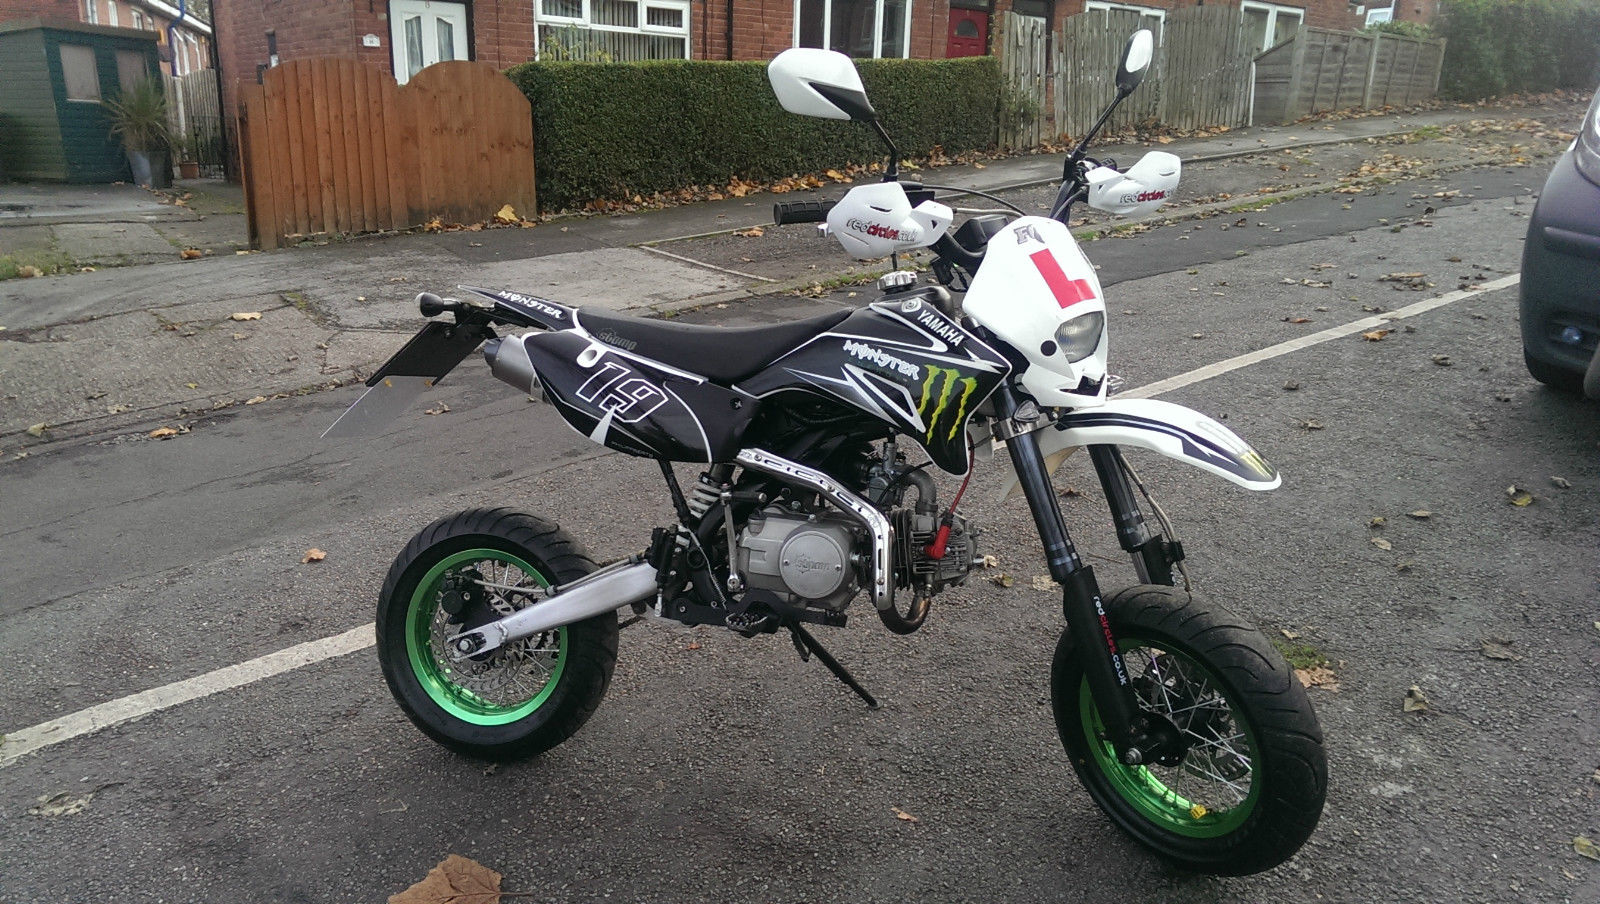 Road Legal Stomp Pit Bike For Sale Uk Road Legal Pit Bike Yx